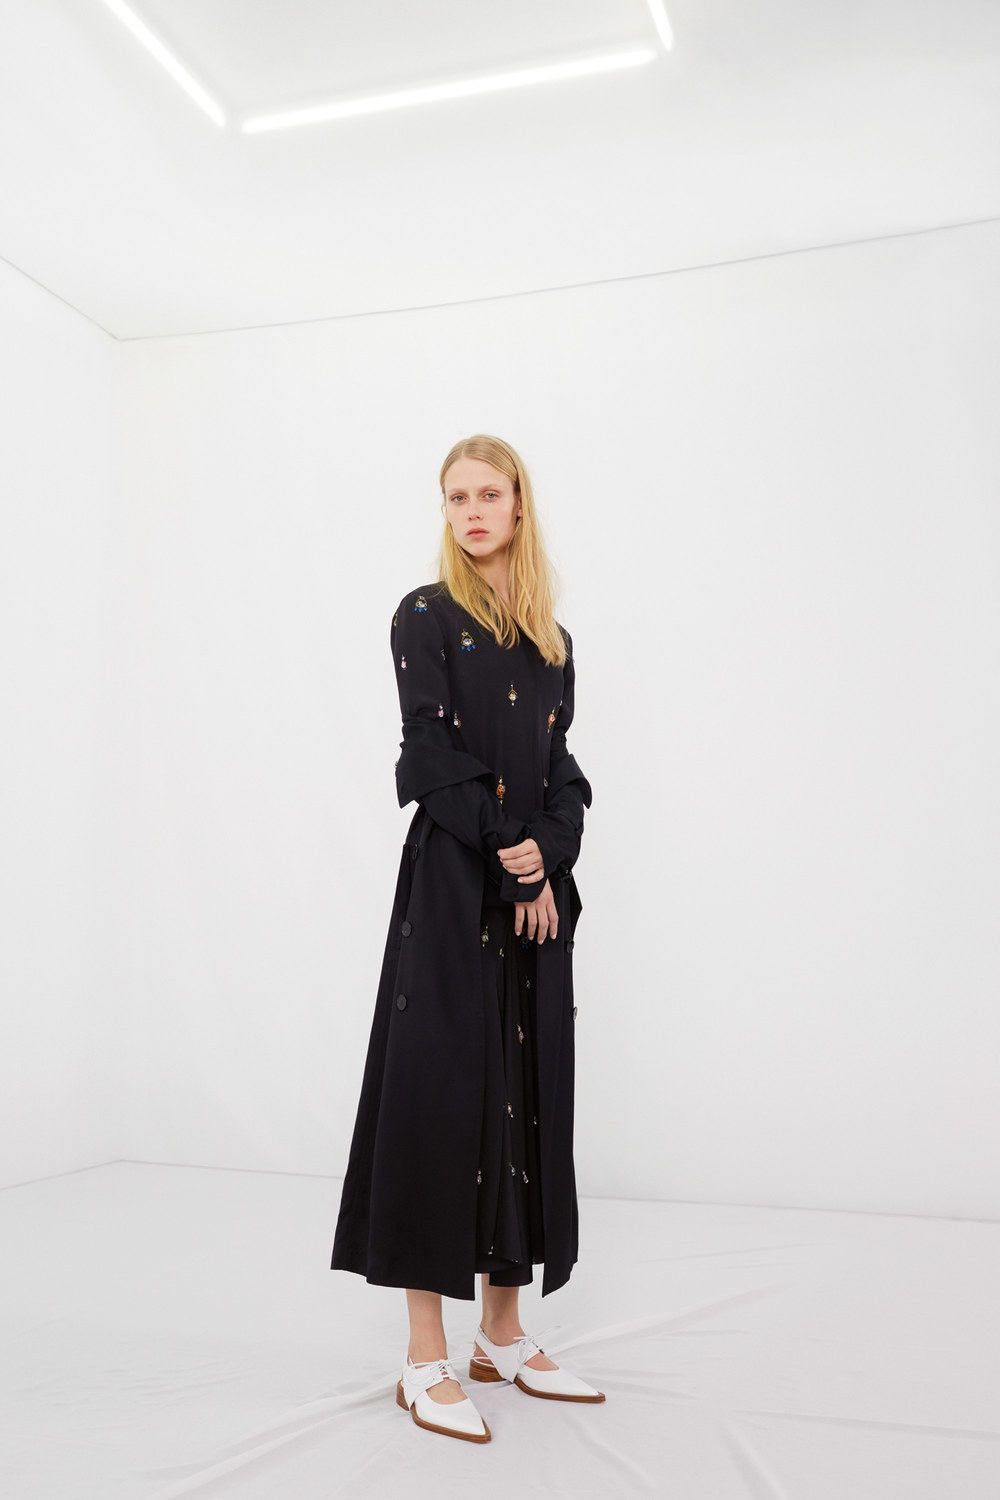 victoria-beckham-pre-fall-2016-lookbook-11.jpg